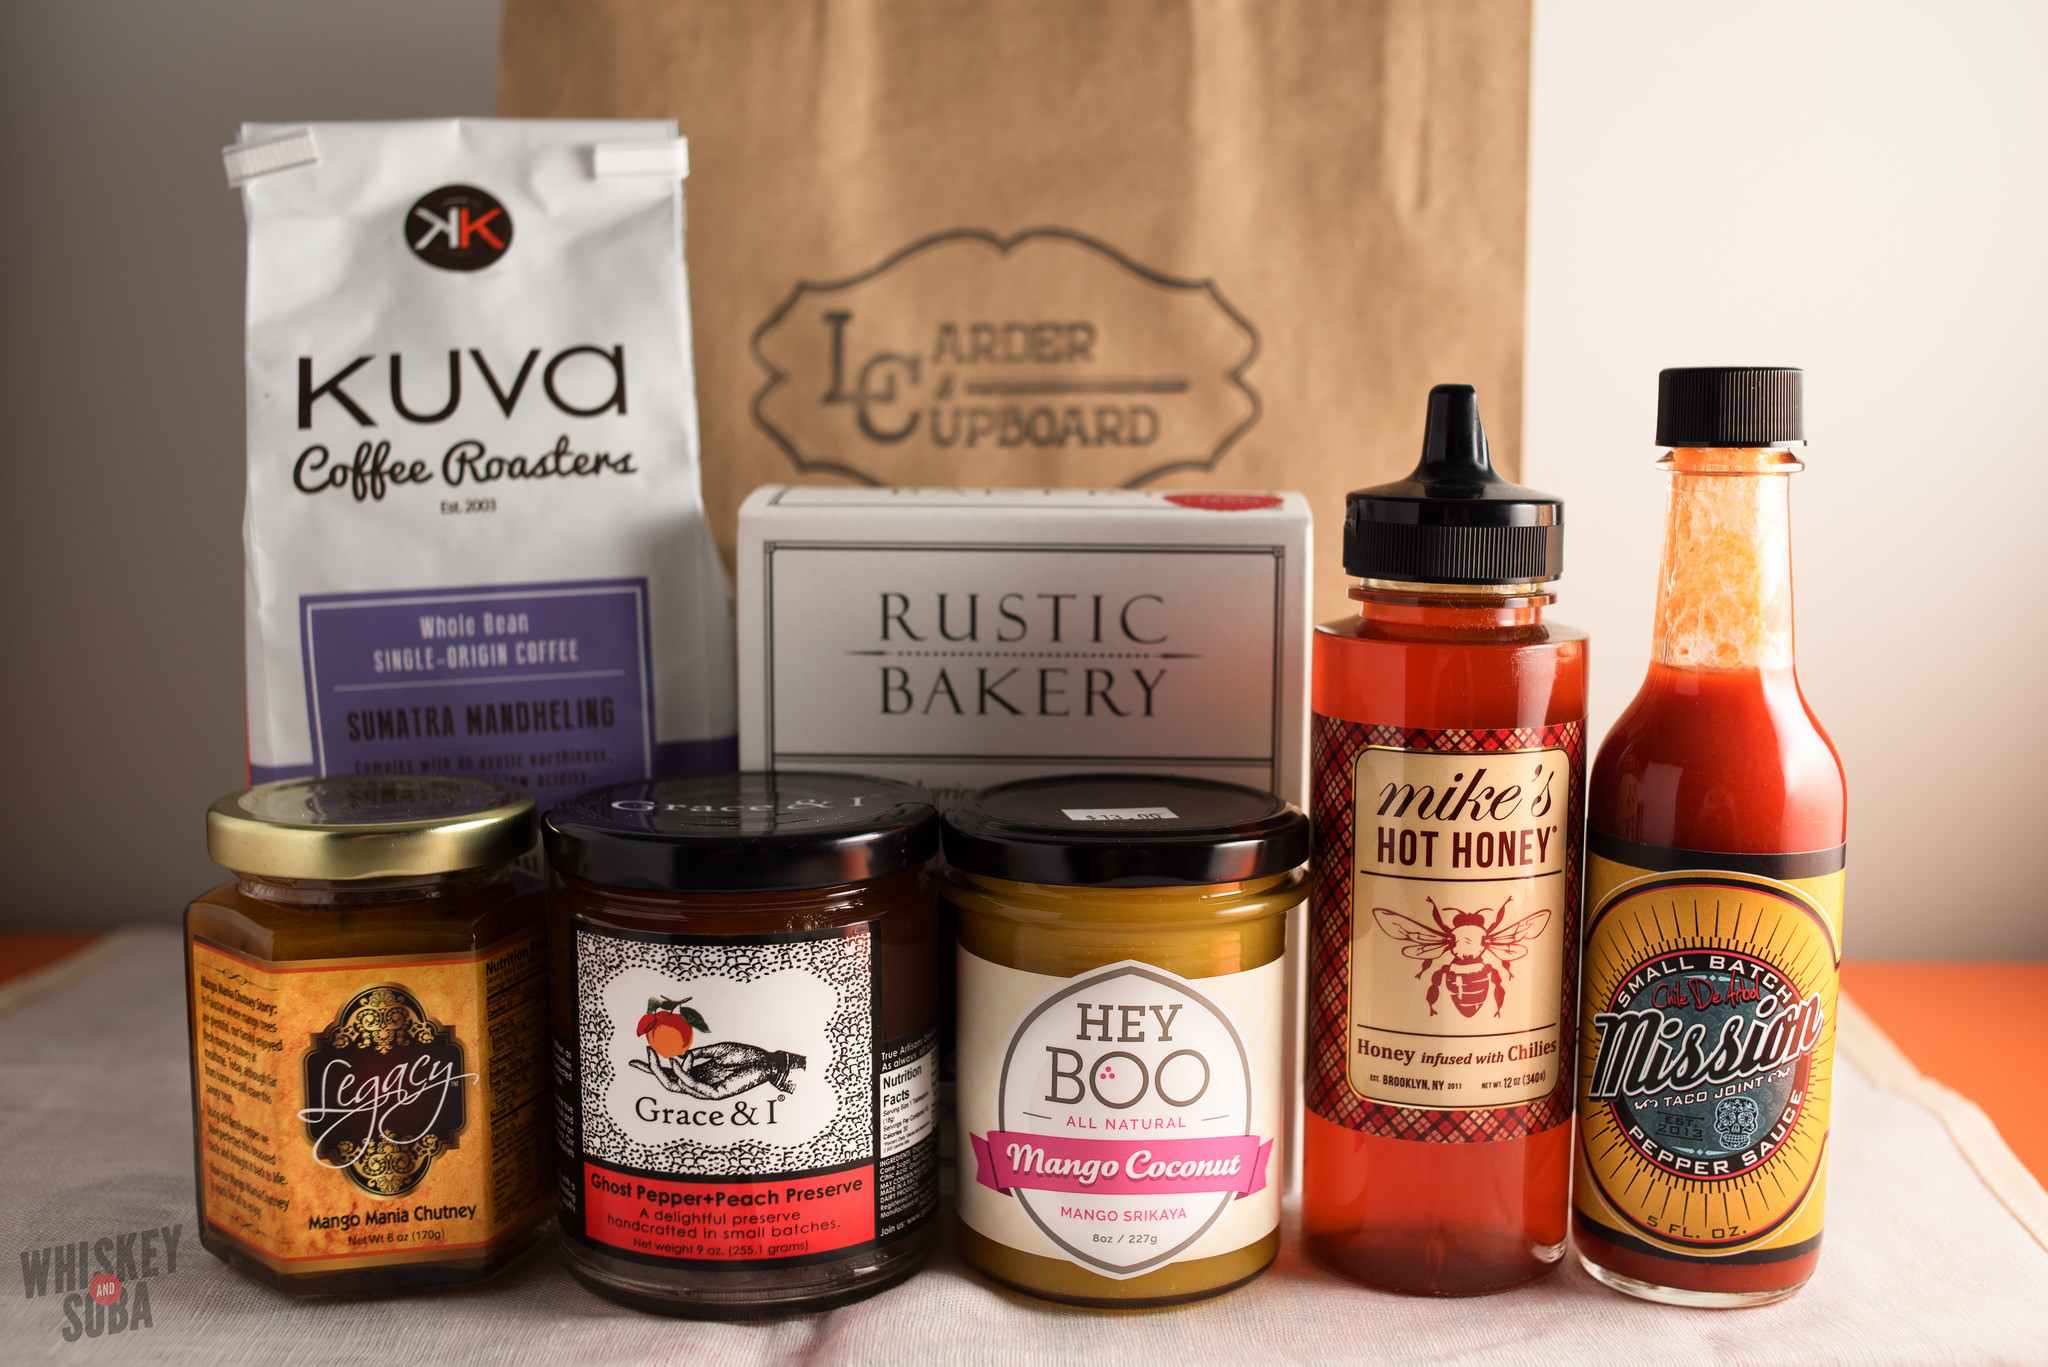 Products at Larder and Cupboard